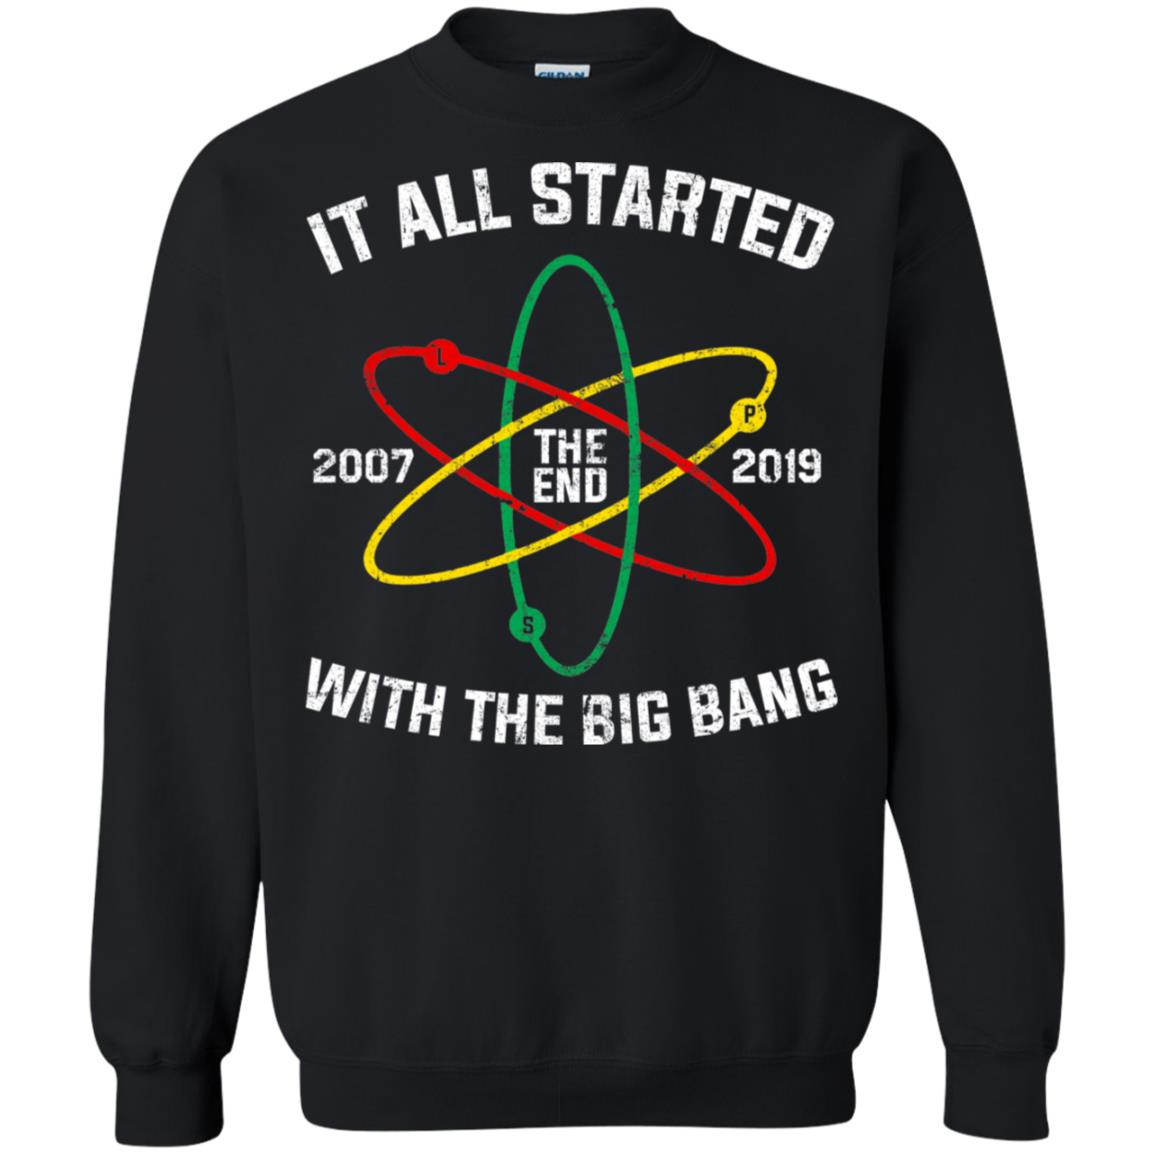 The End 2007 2019 it all started with the big bang